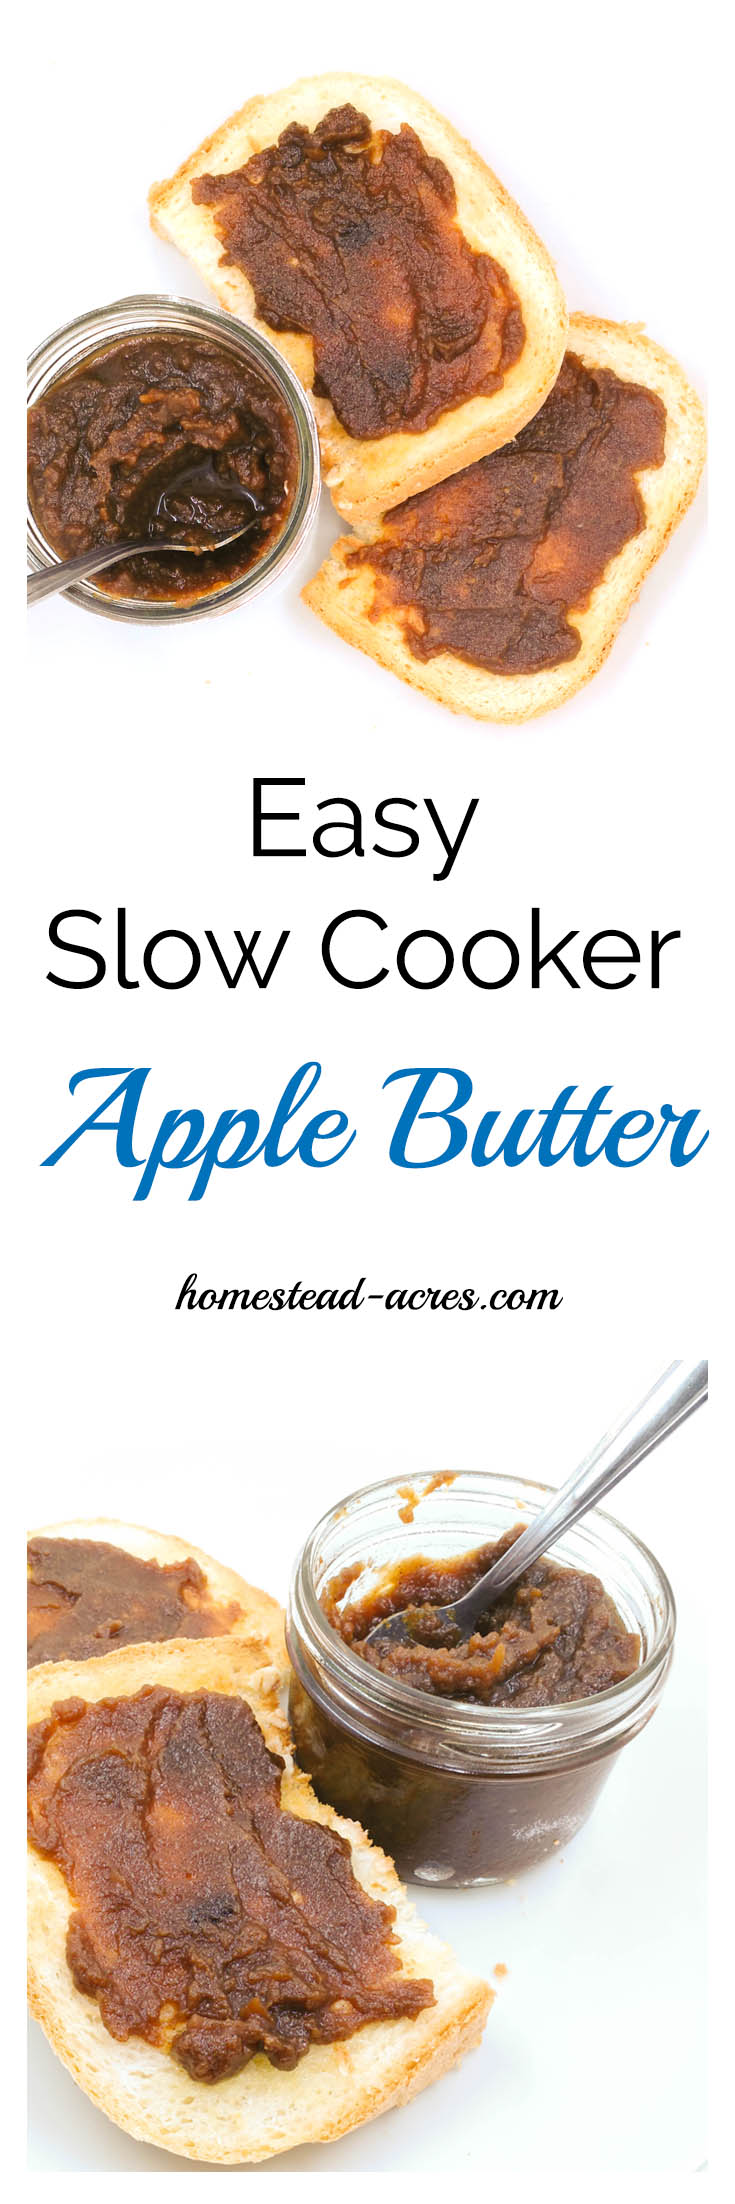 Easy Slow Cooker Apple Butter With Step by Step Canning And Freezing Directions This slow cooker apple butter recipe is just so easy to make! Delicious with bread, muffins, pancakes and a wonderful gift to share! | www.homestead-acres.com